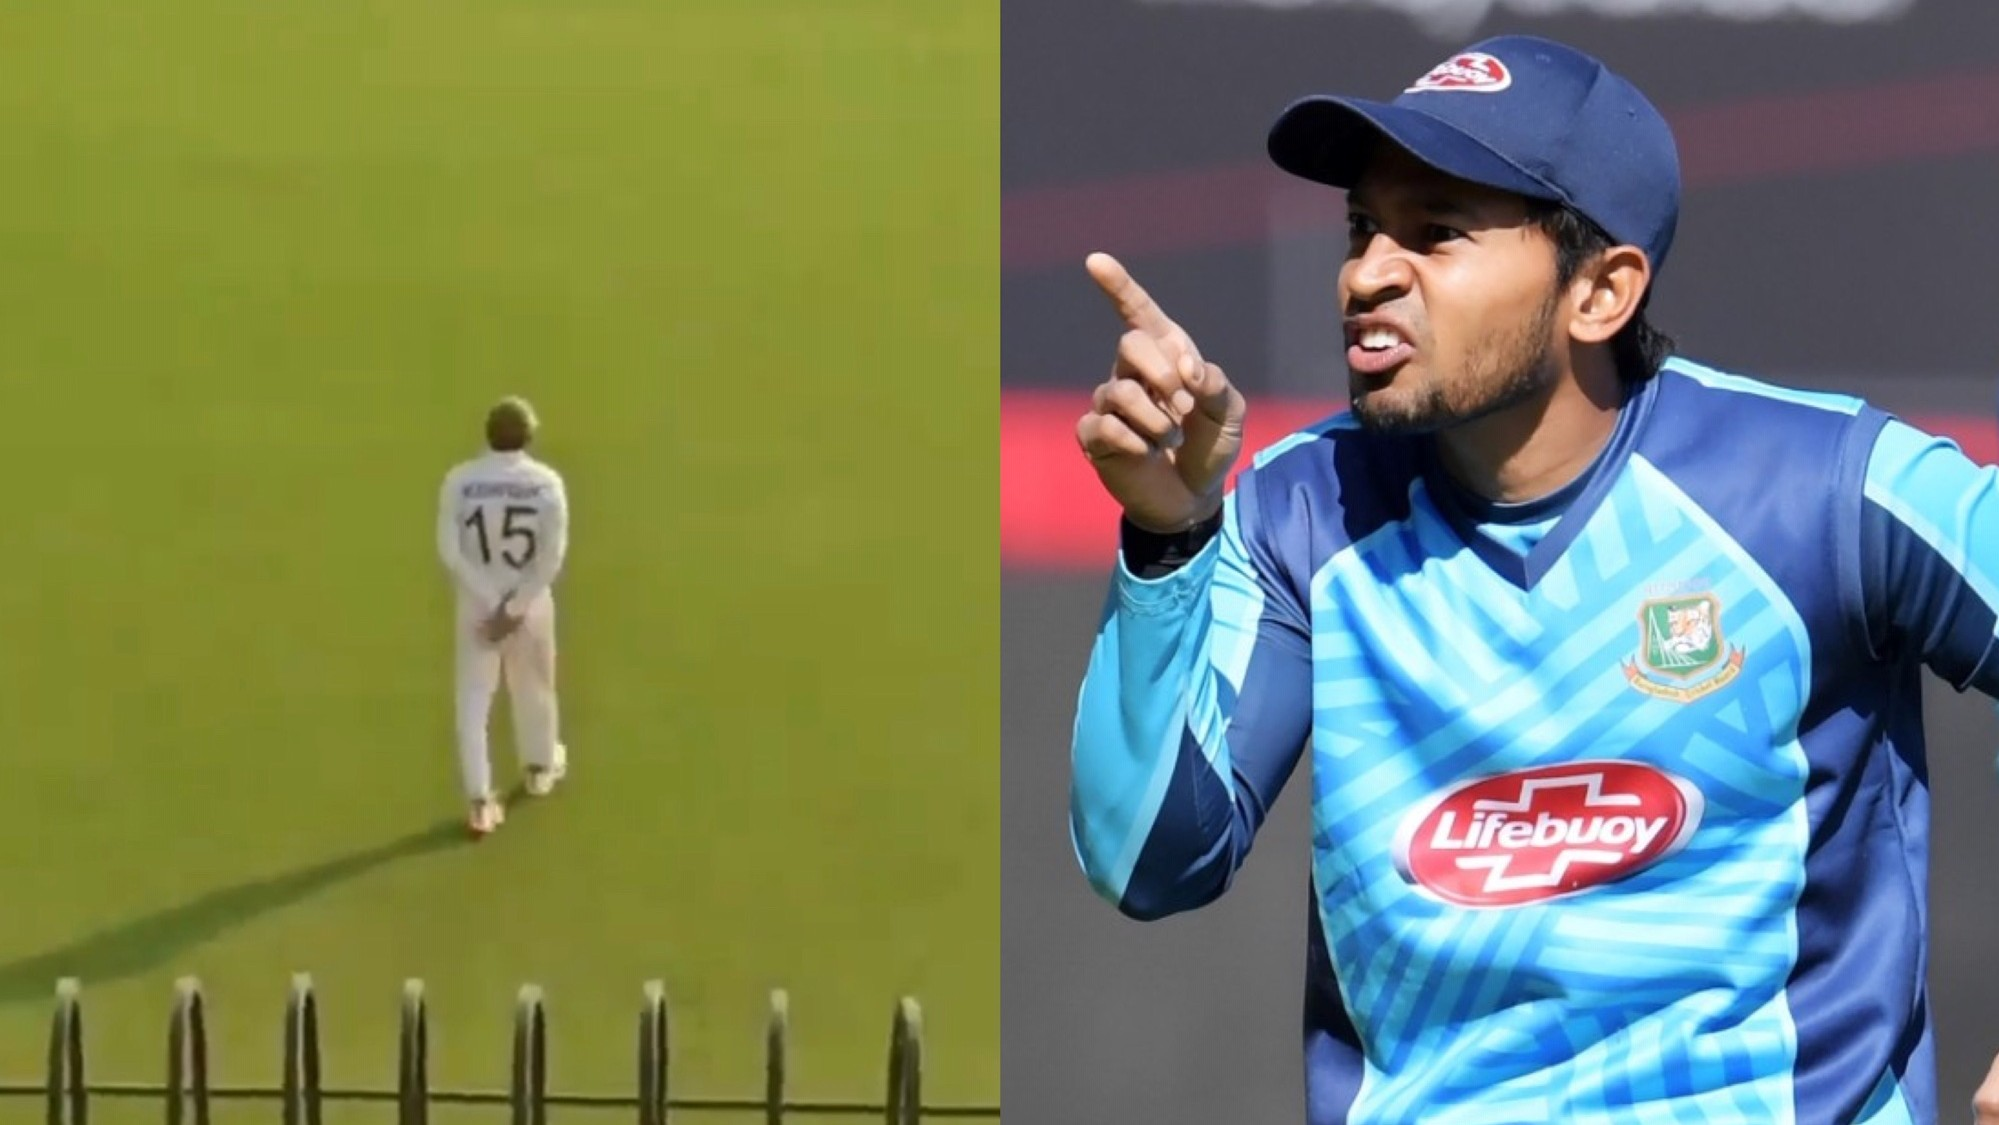 IND v BAN 2019: WATCH - Fans roast Mushfiqur Rahim with chants of